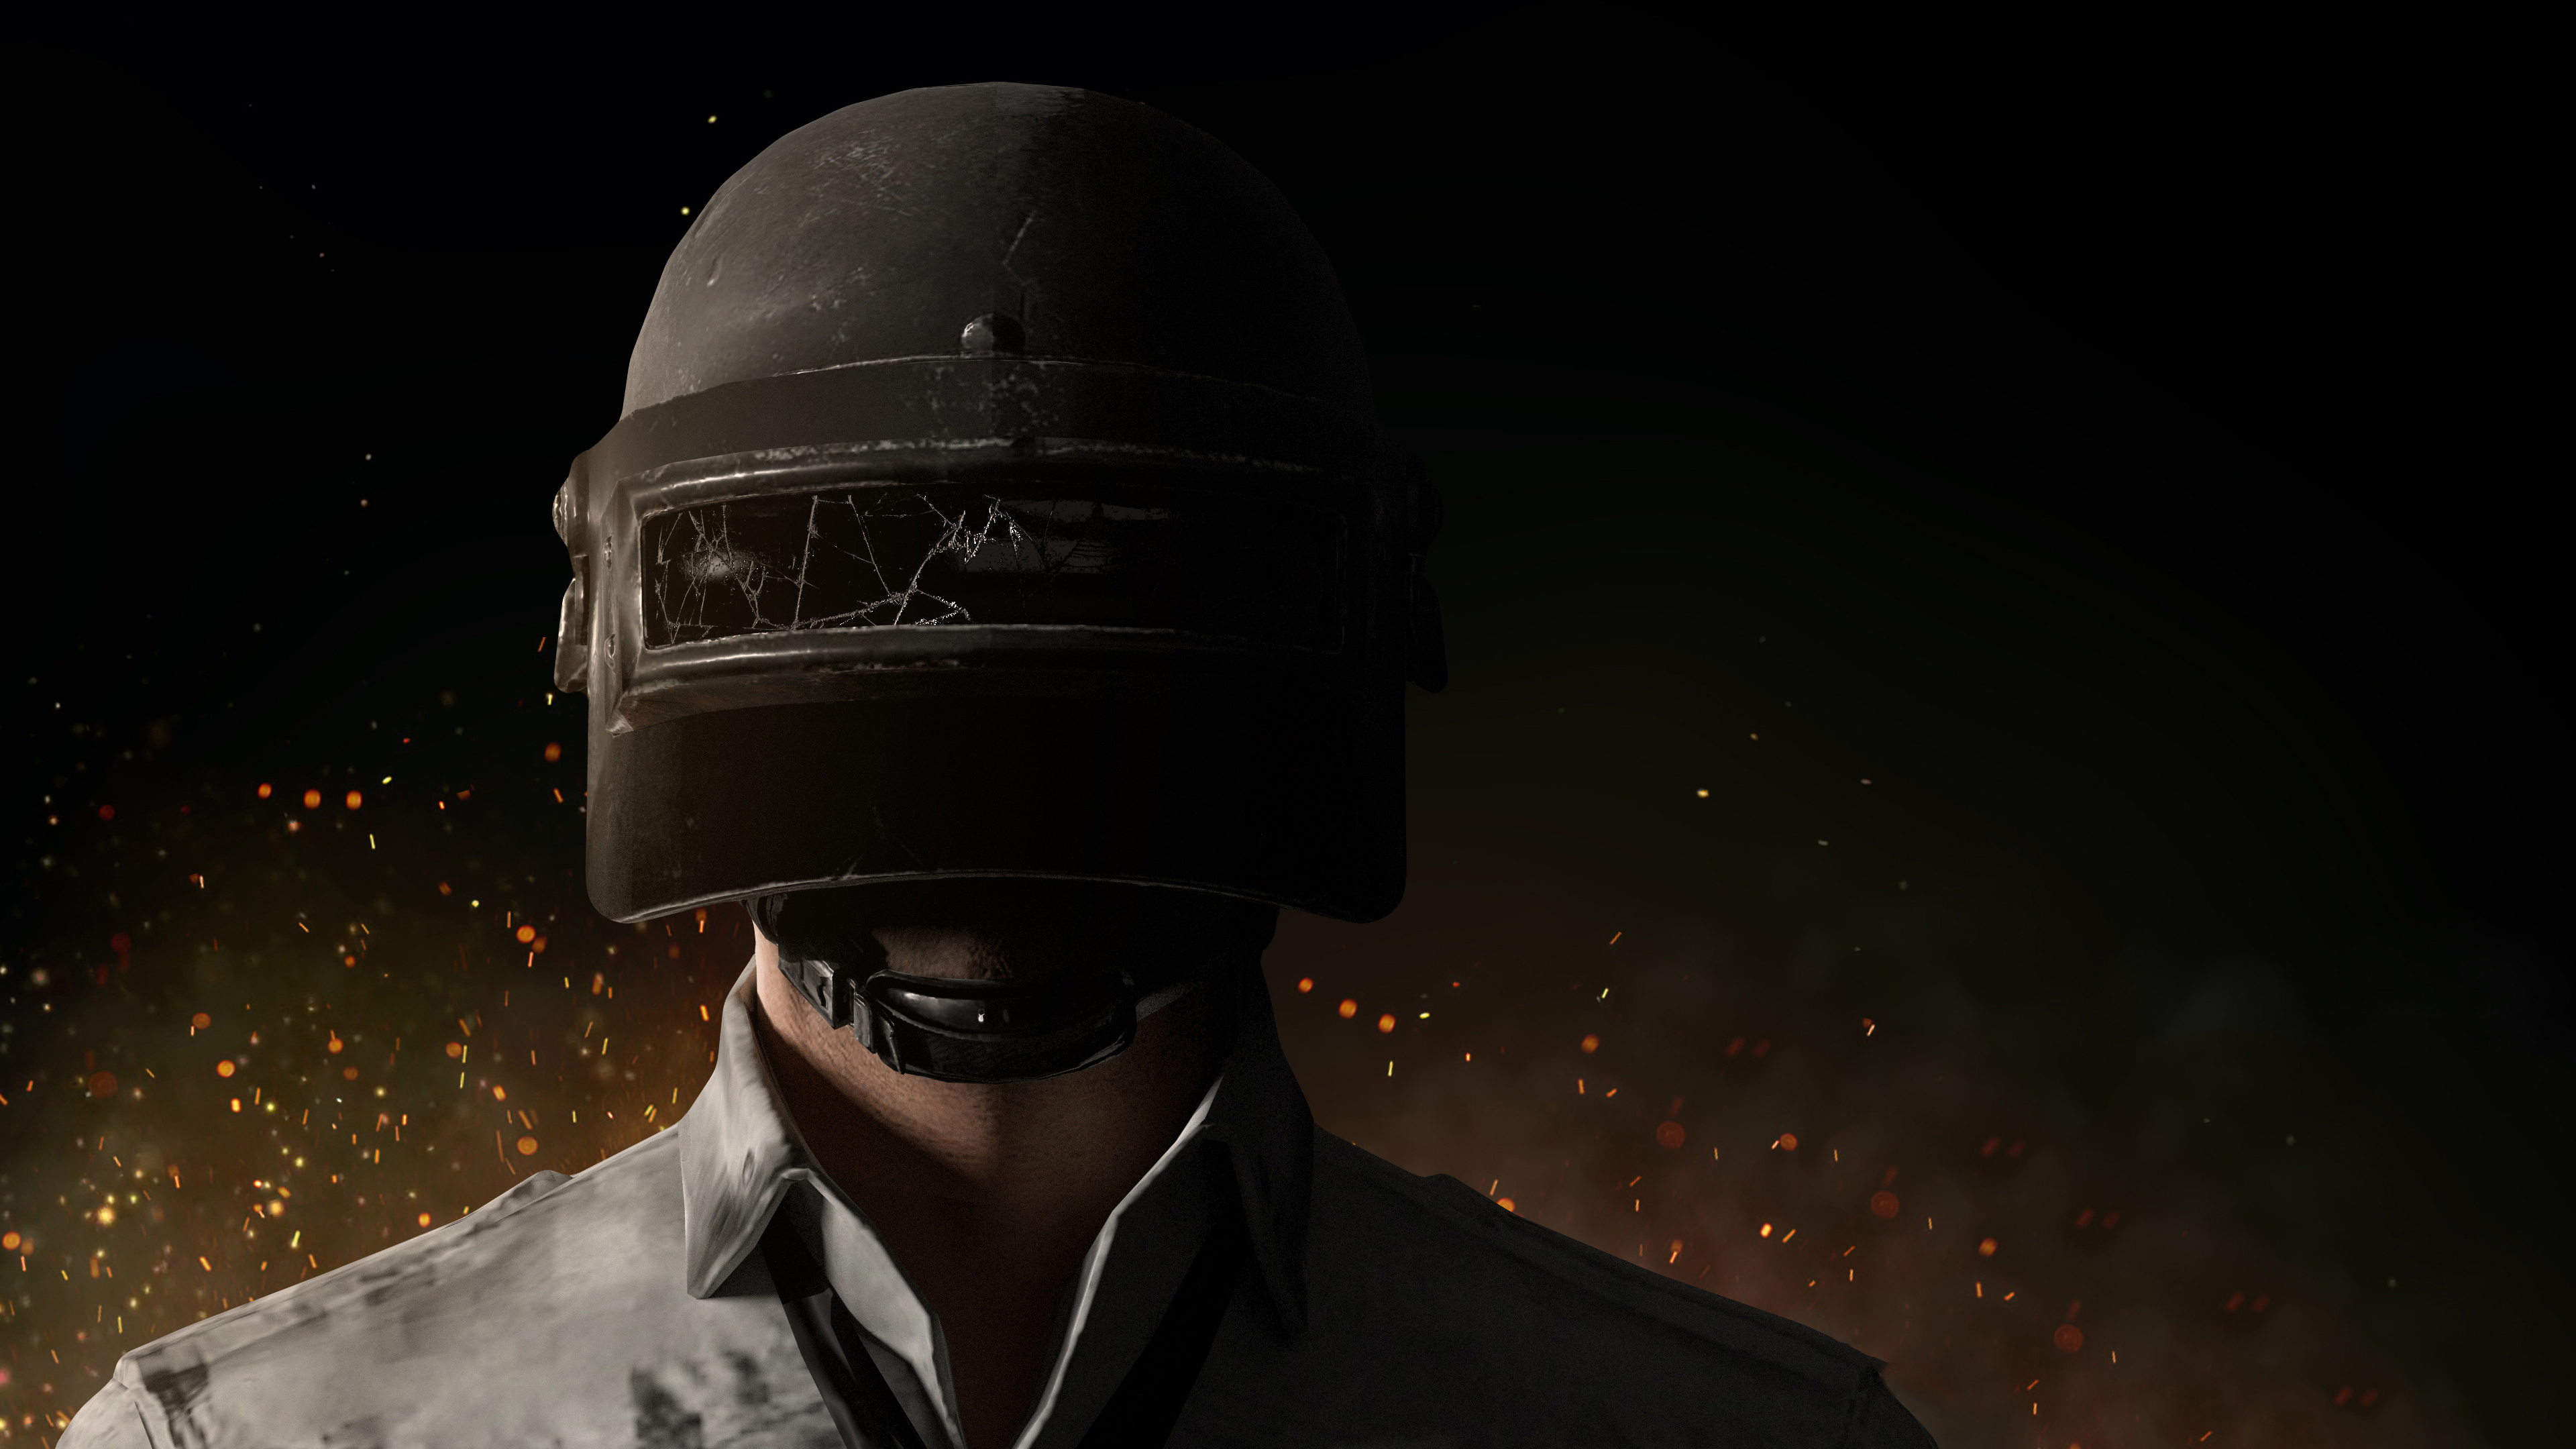 Pubg Lite Wallpaper Hd: Player Unknown's Battlegrounds (PUBG) 4K Helmetguy Pubg